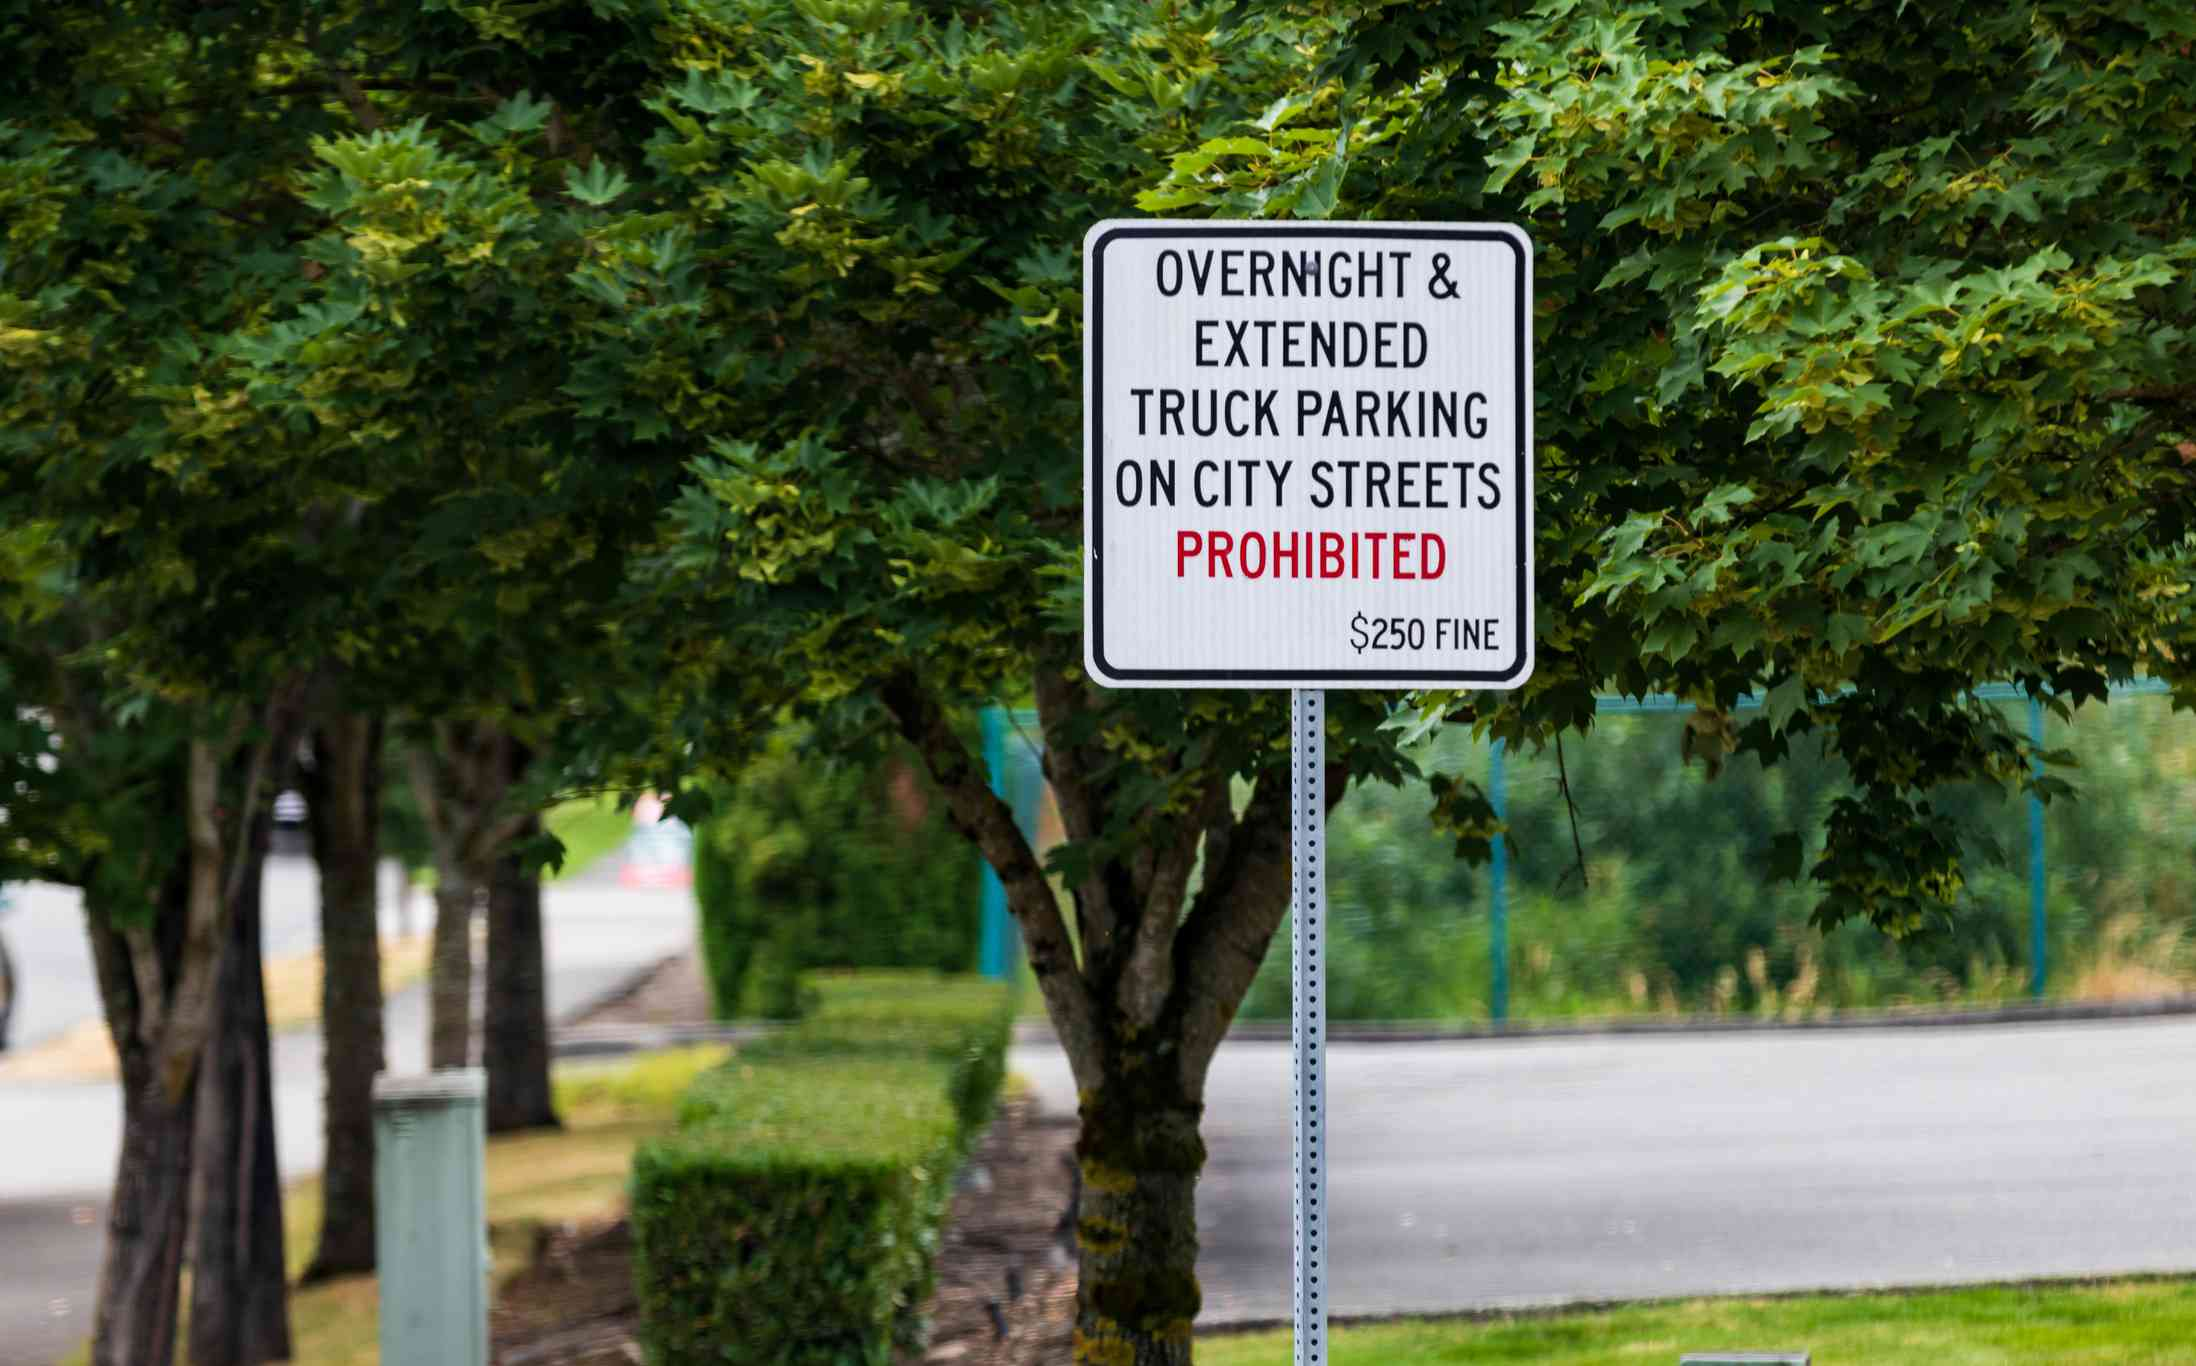 No overnight parking sign